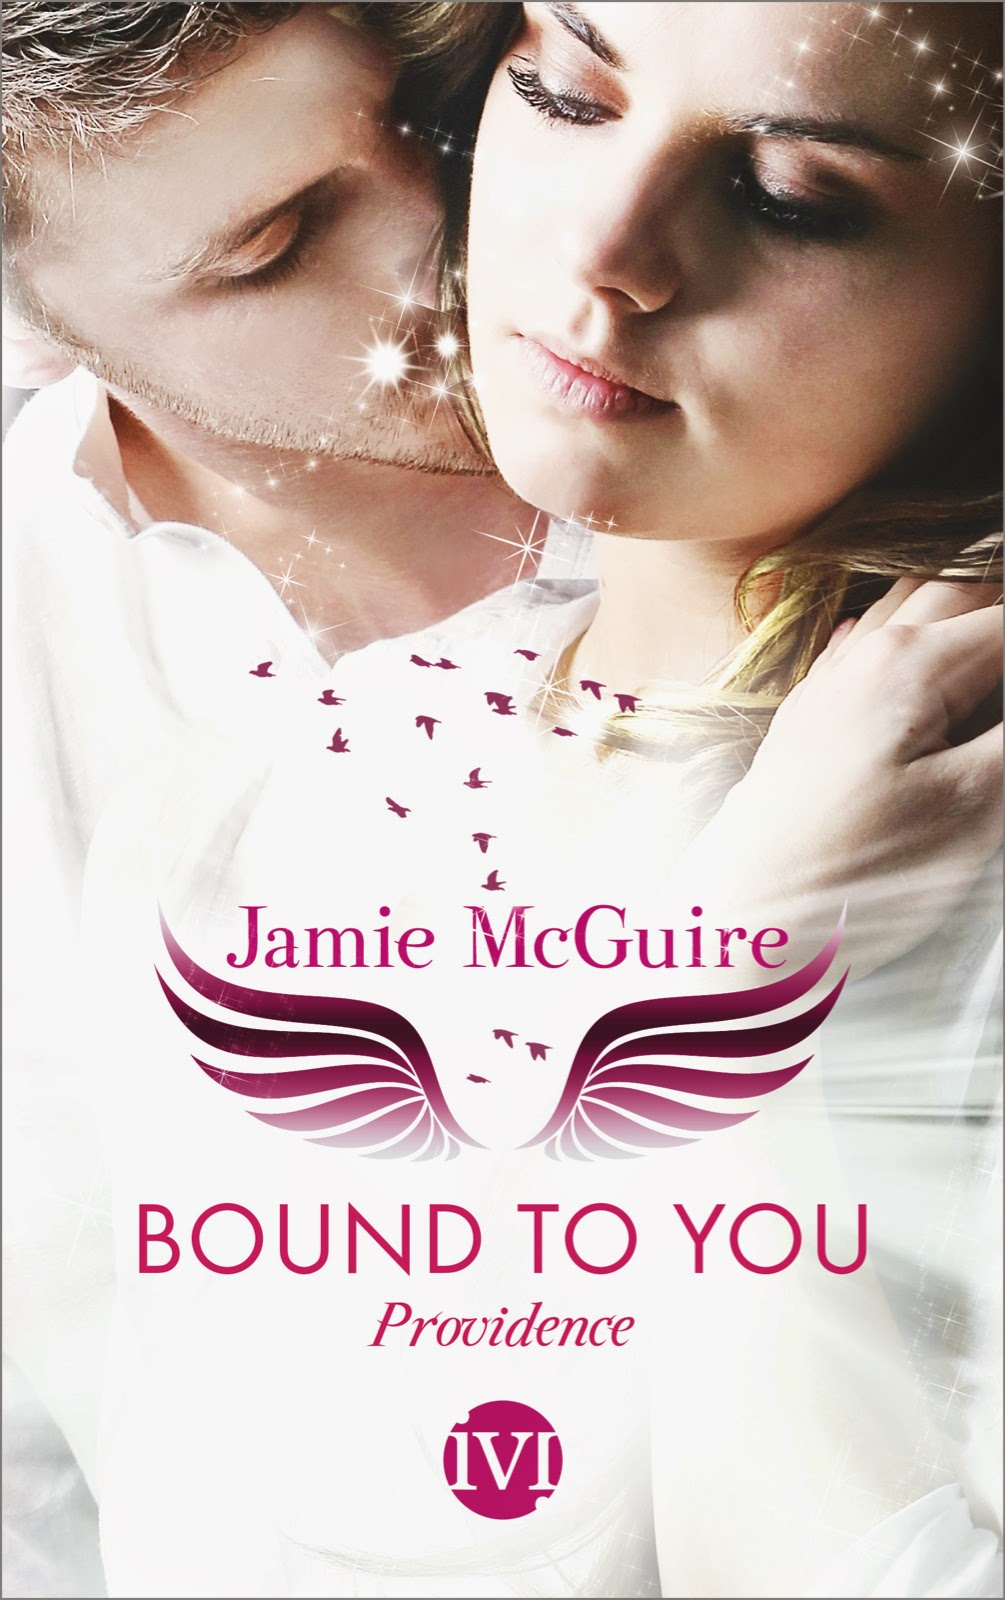 http://www.amazon.de/Bound-You-Providence-Jamie-McGuire-ebook/dp/B00KH07YZC/ref=sr_1_1_bnp_1_kin?ie=UTF8&qid=1414240638&sr=8-1&keywords=bound+to+you